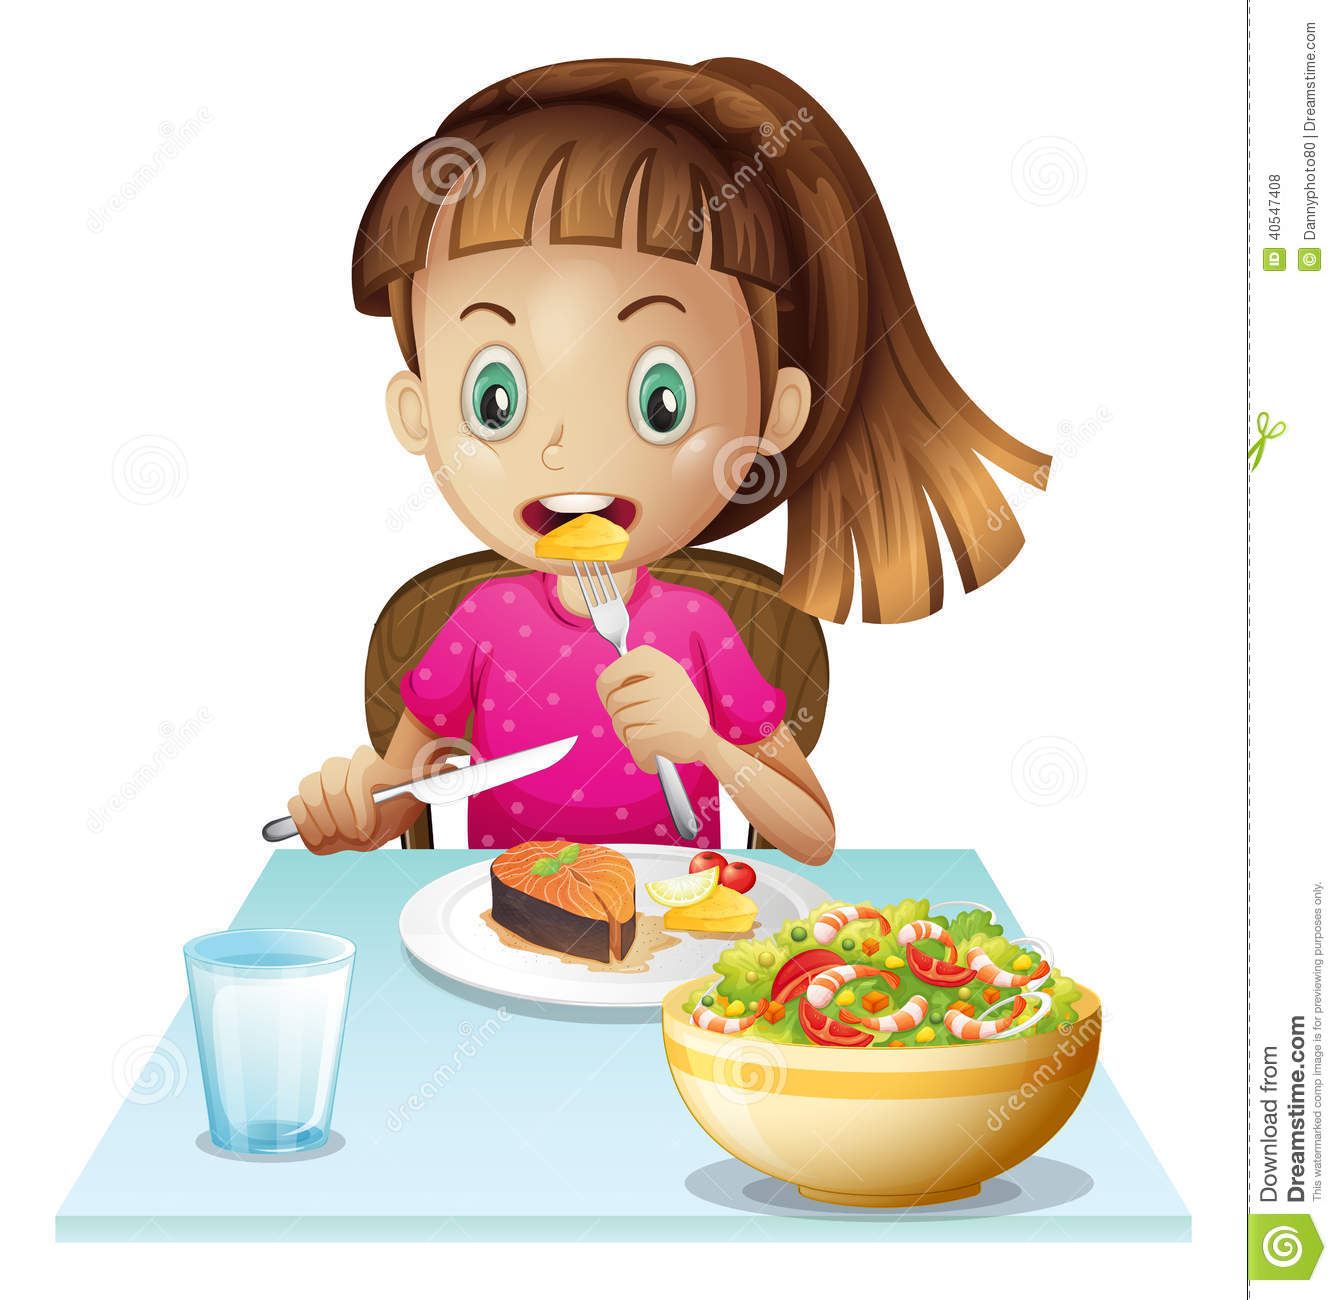 Girl Eating Lunch Clipart - Clipart Kid